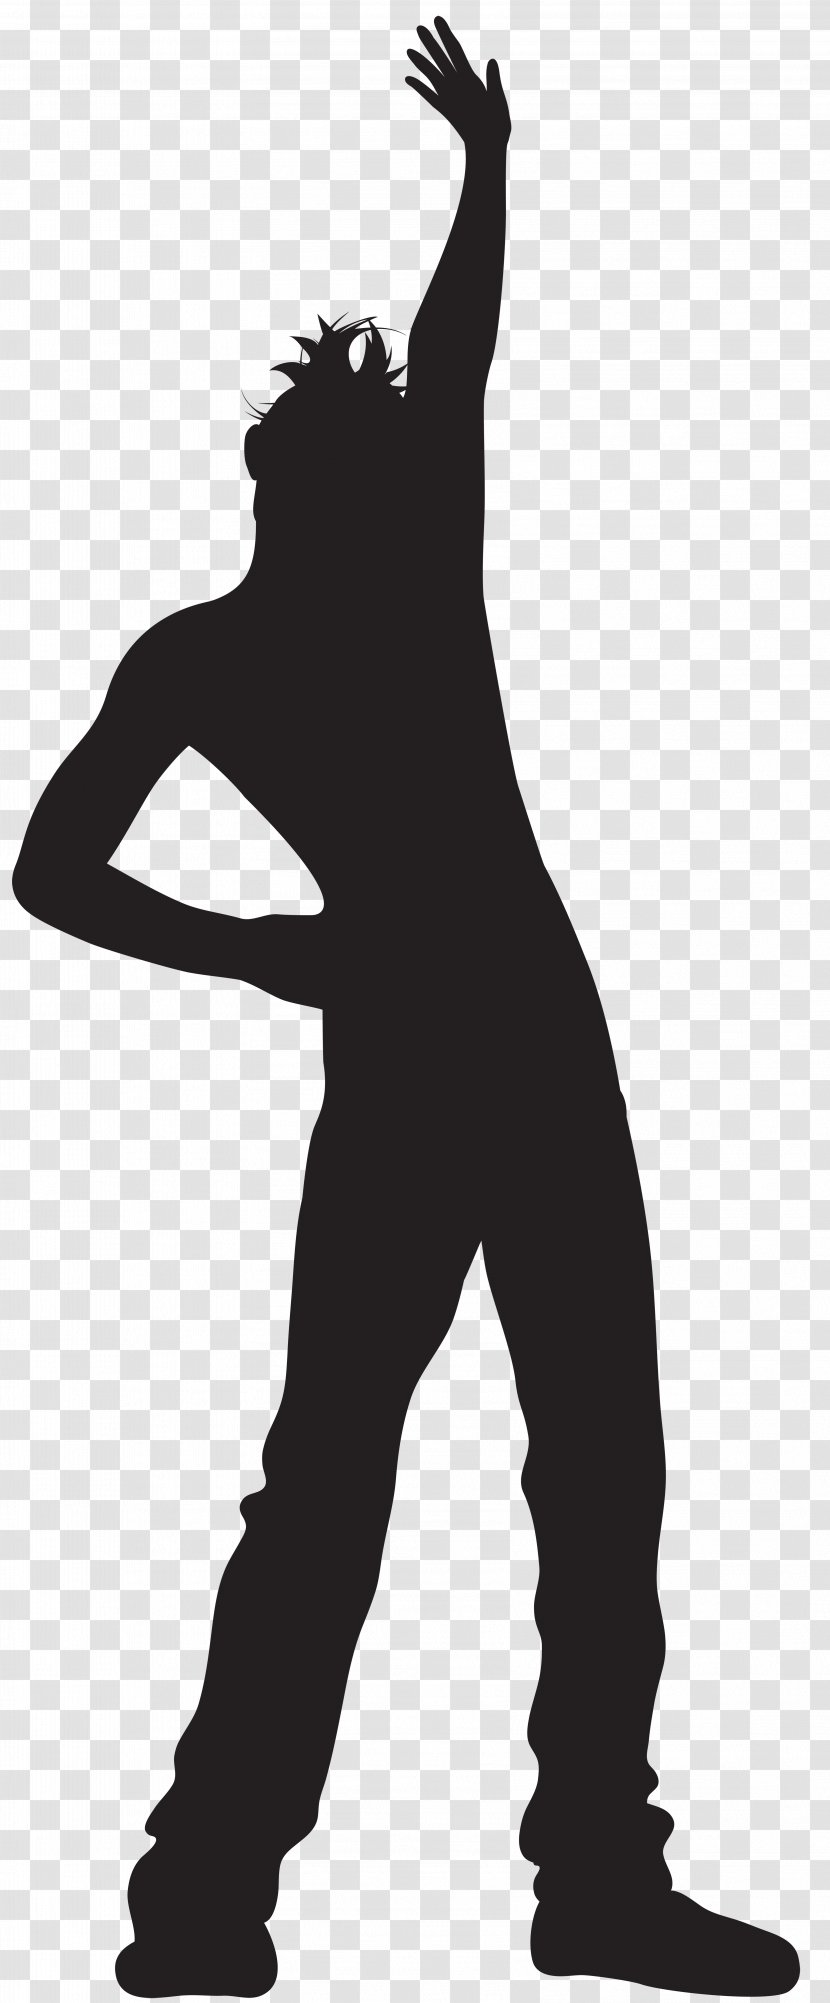 Silhouette Dance Clip Art Black And White Man Dancing Cliparts Transparent Png